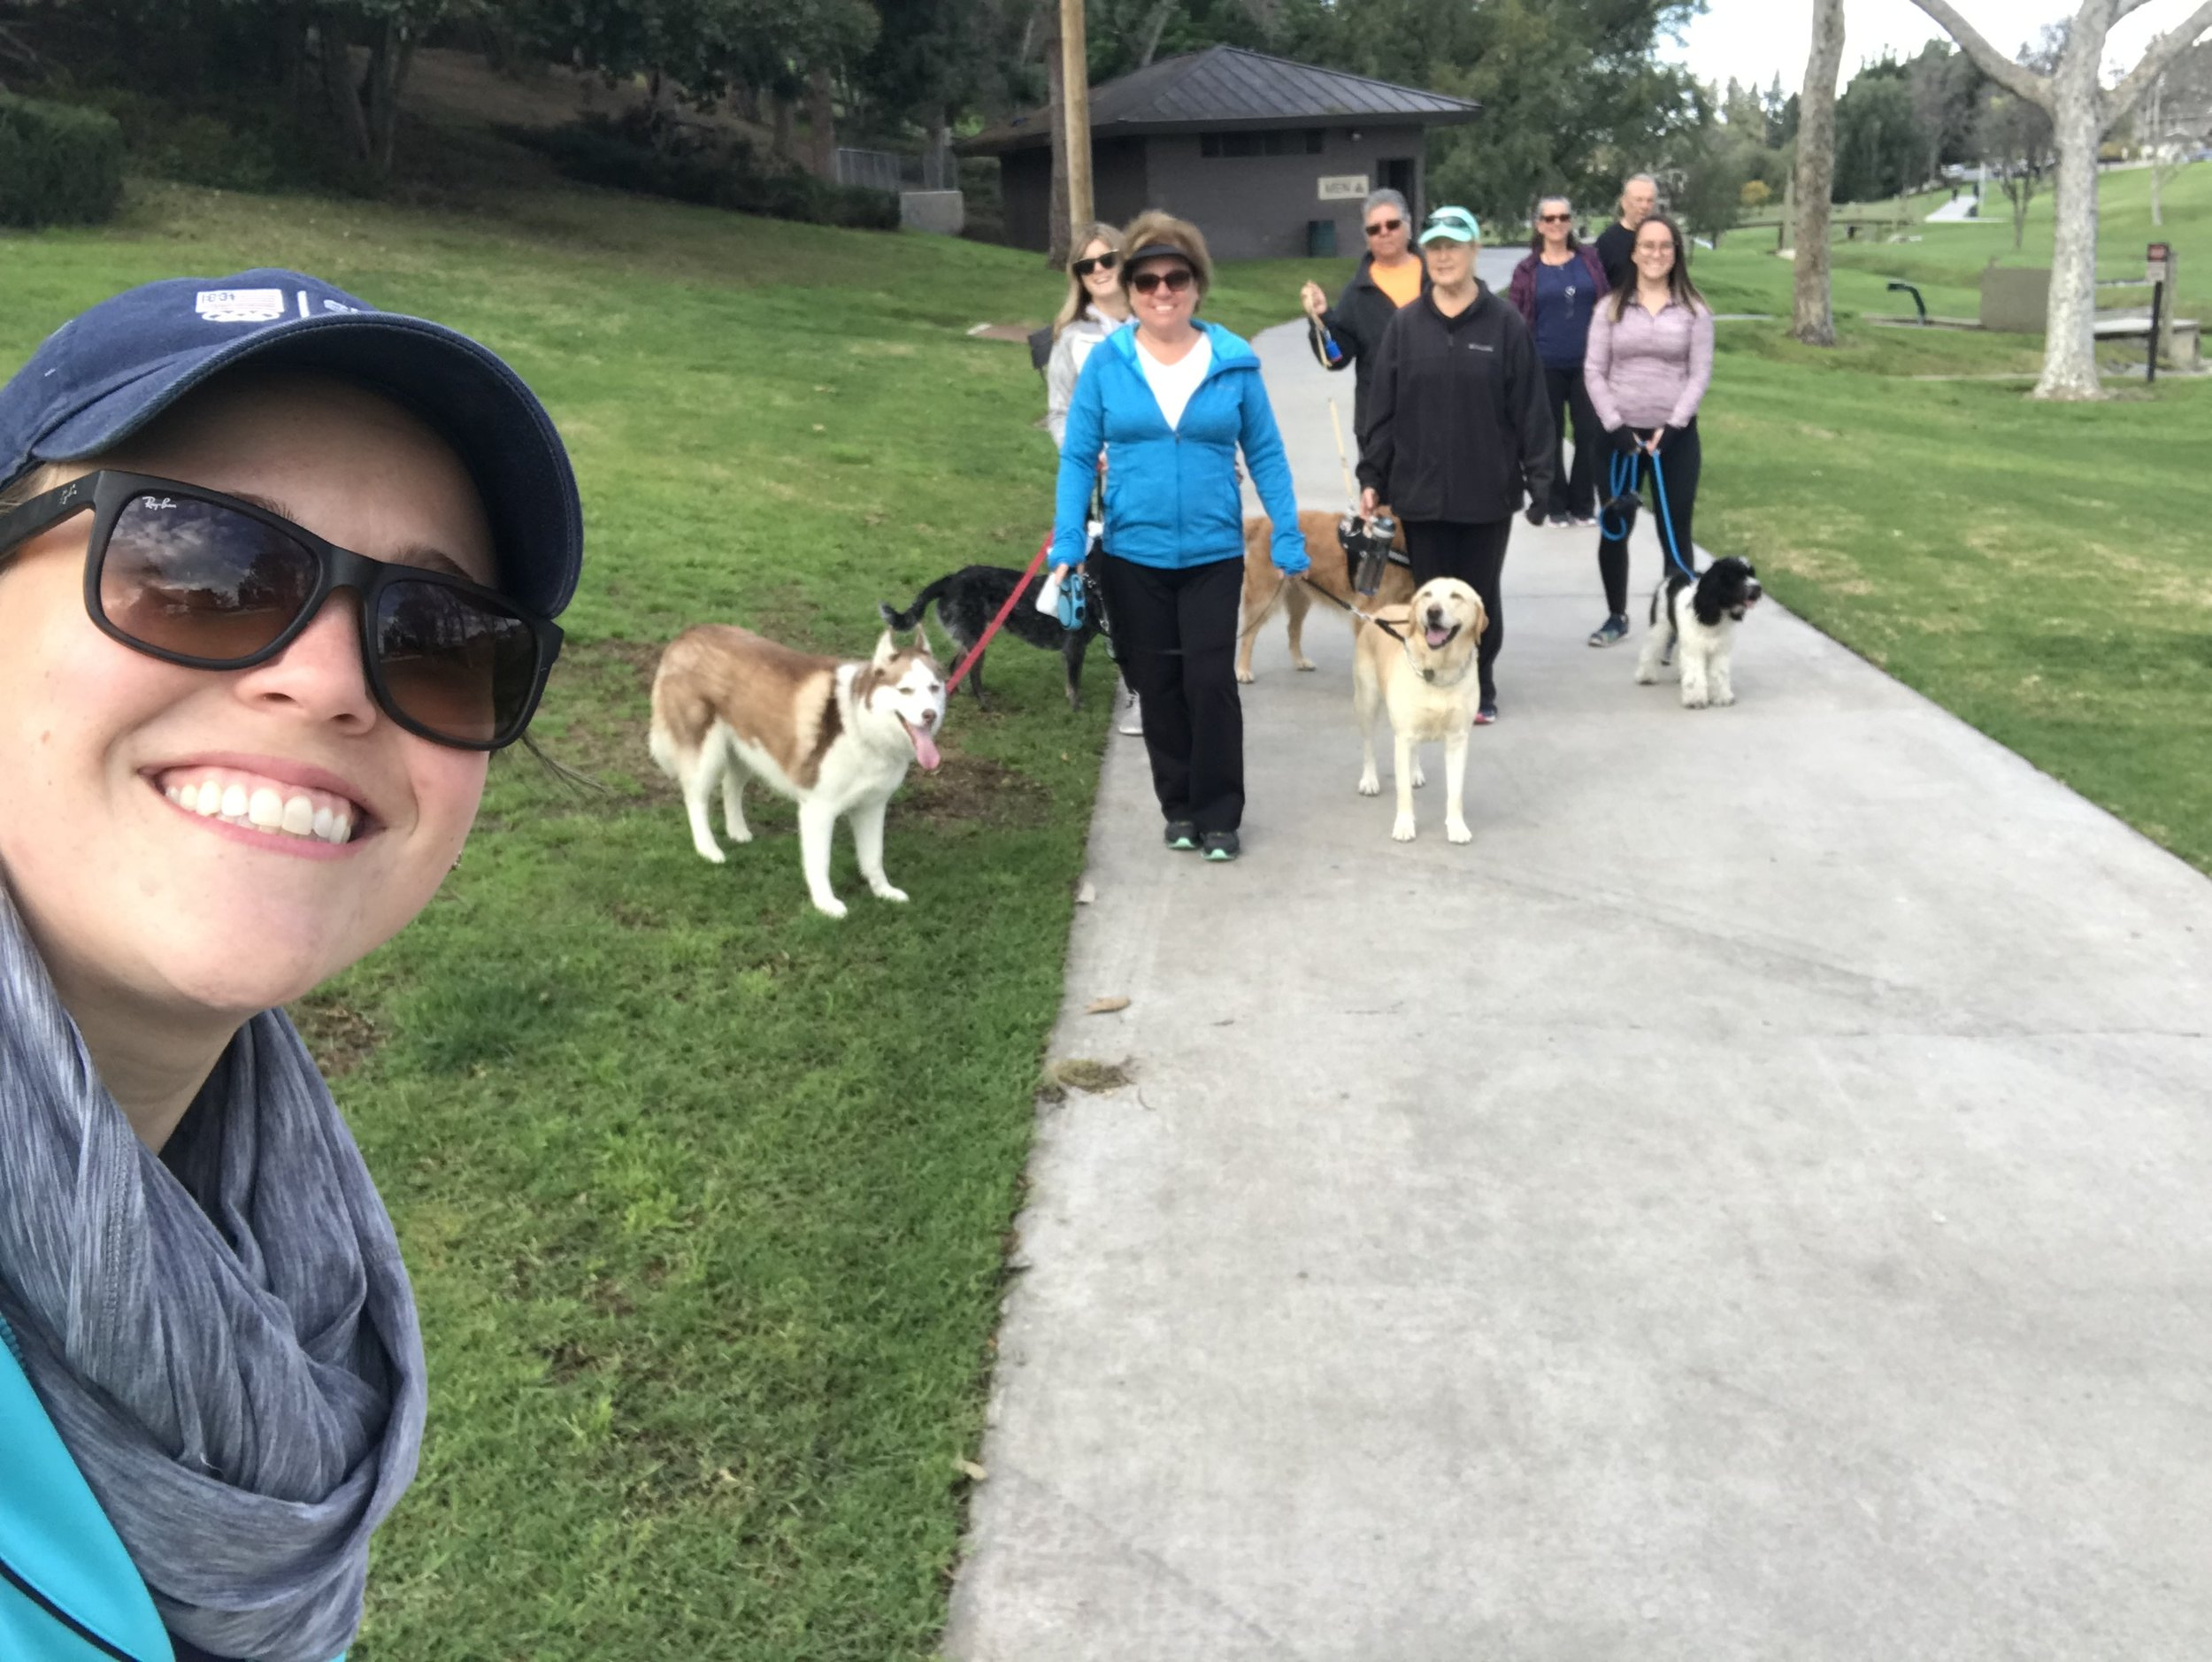 March - Walk with the Doc and dogs! Always a great time walking, talking and enjoying beautiful Creek Park with our furry friends.